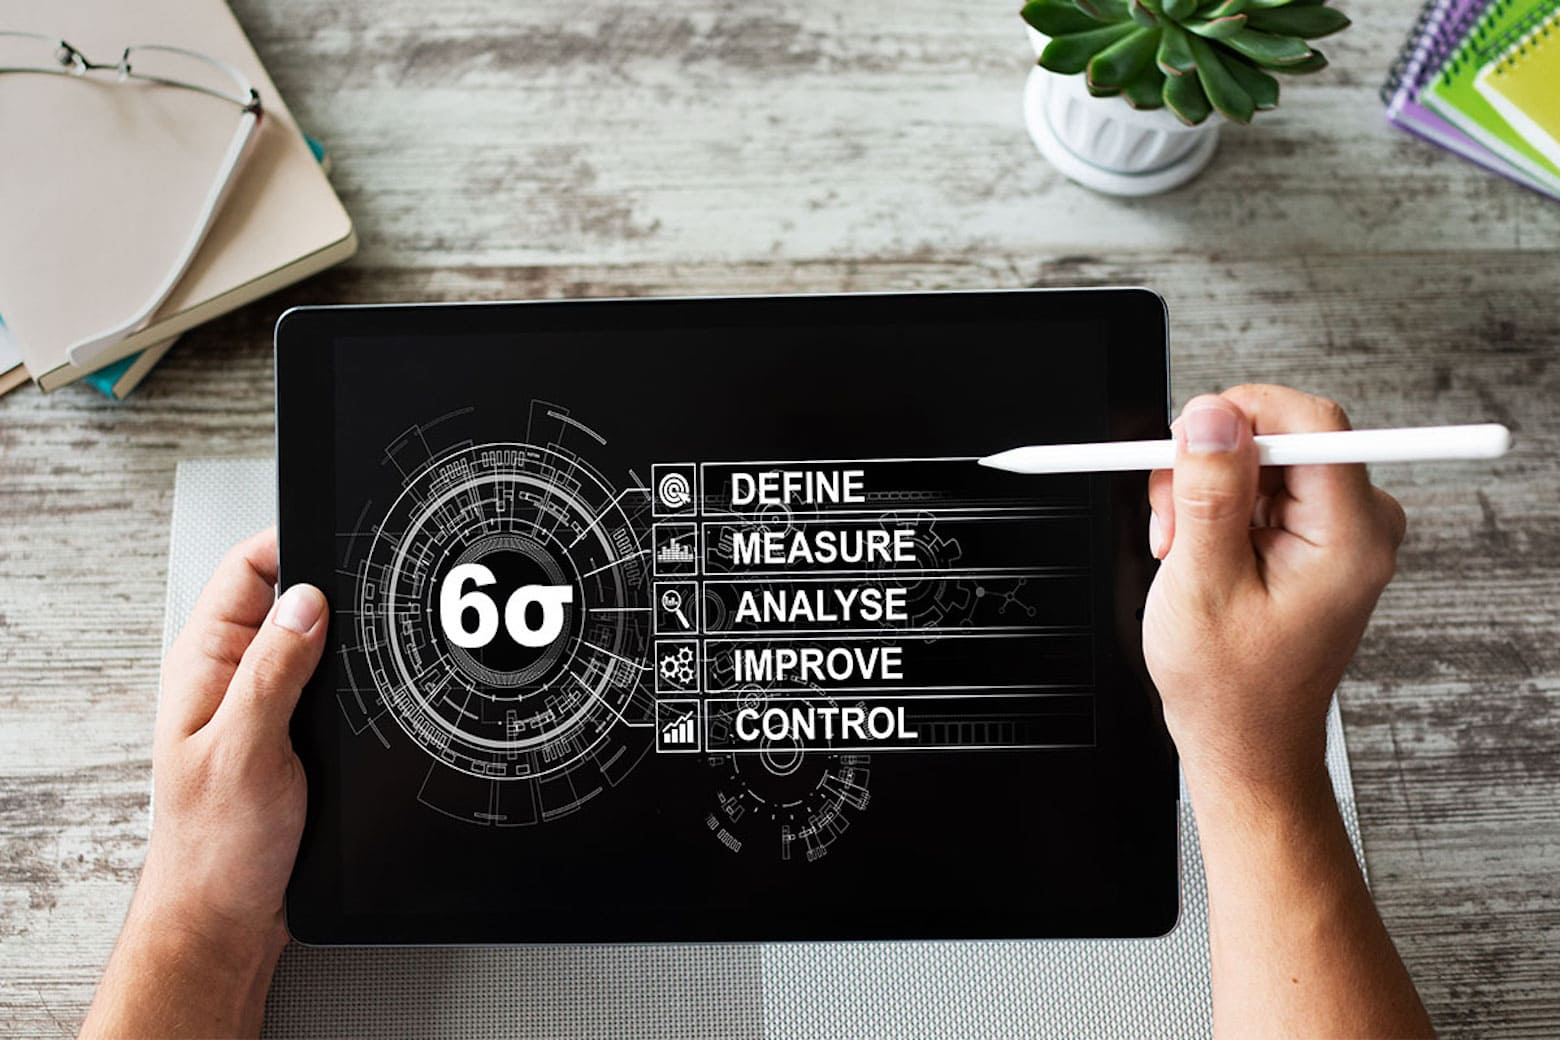 Ring in the new year by mastering Six Sigma training